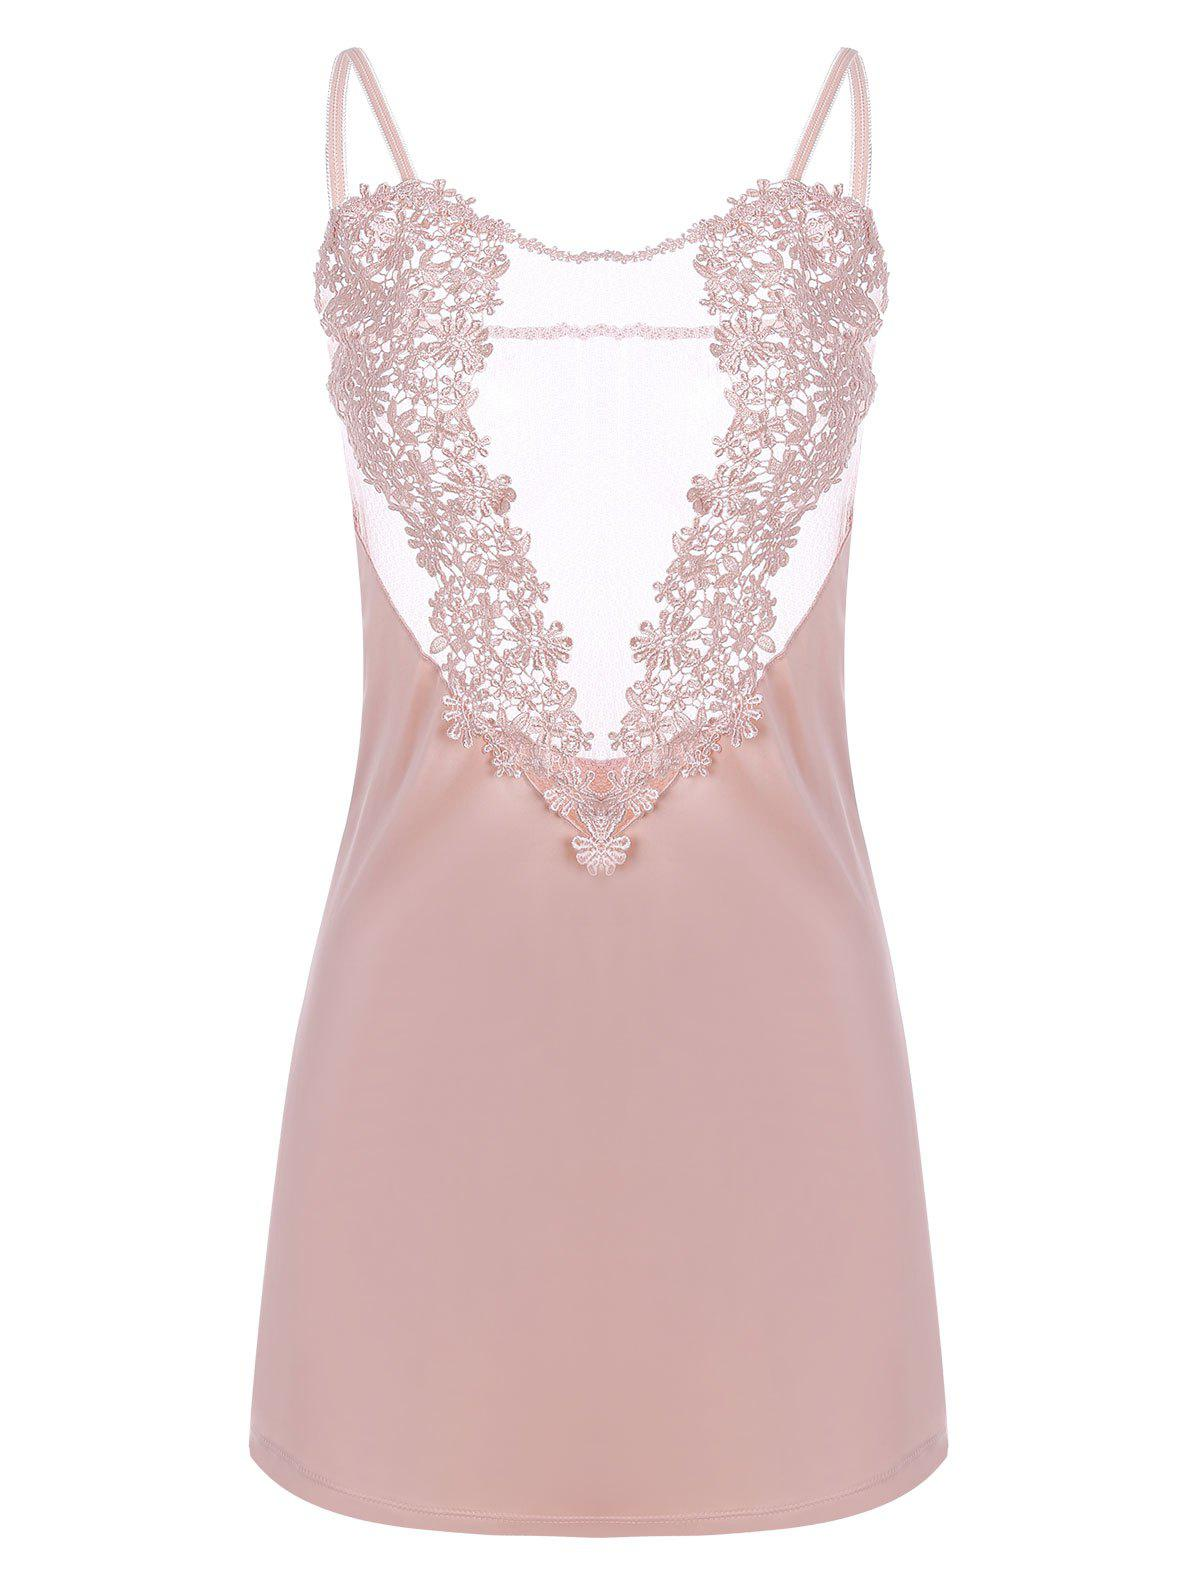 Embroidered Sheer Satin Slip Dress - LIGHT PINK ONE SIZE